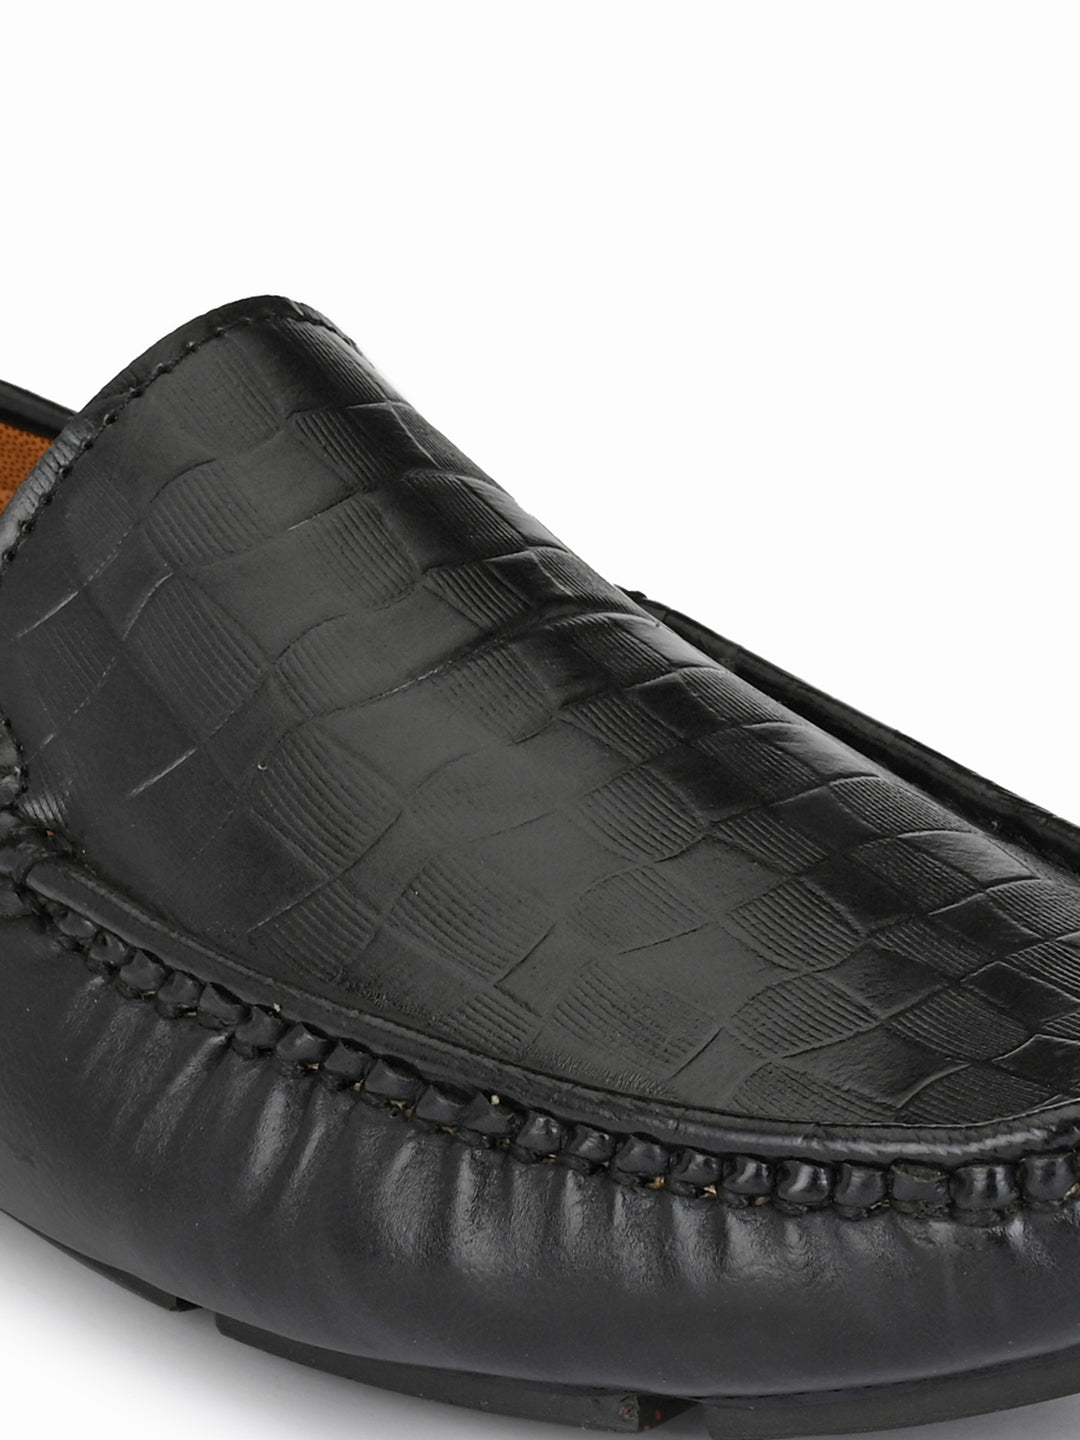 Flexi Black Driving Loafers - shoegaro